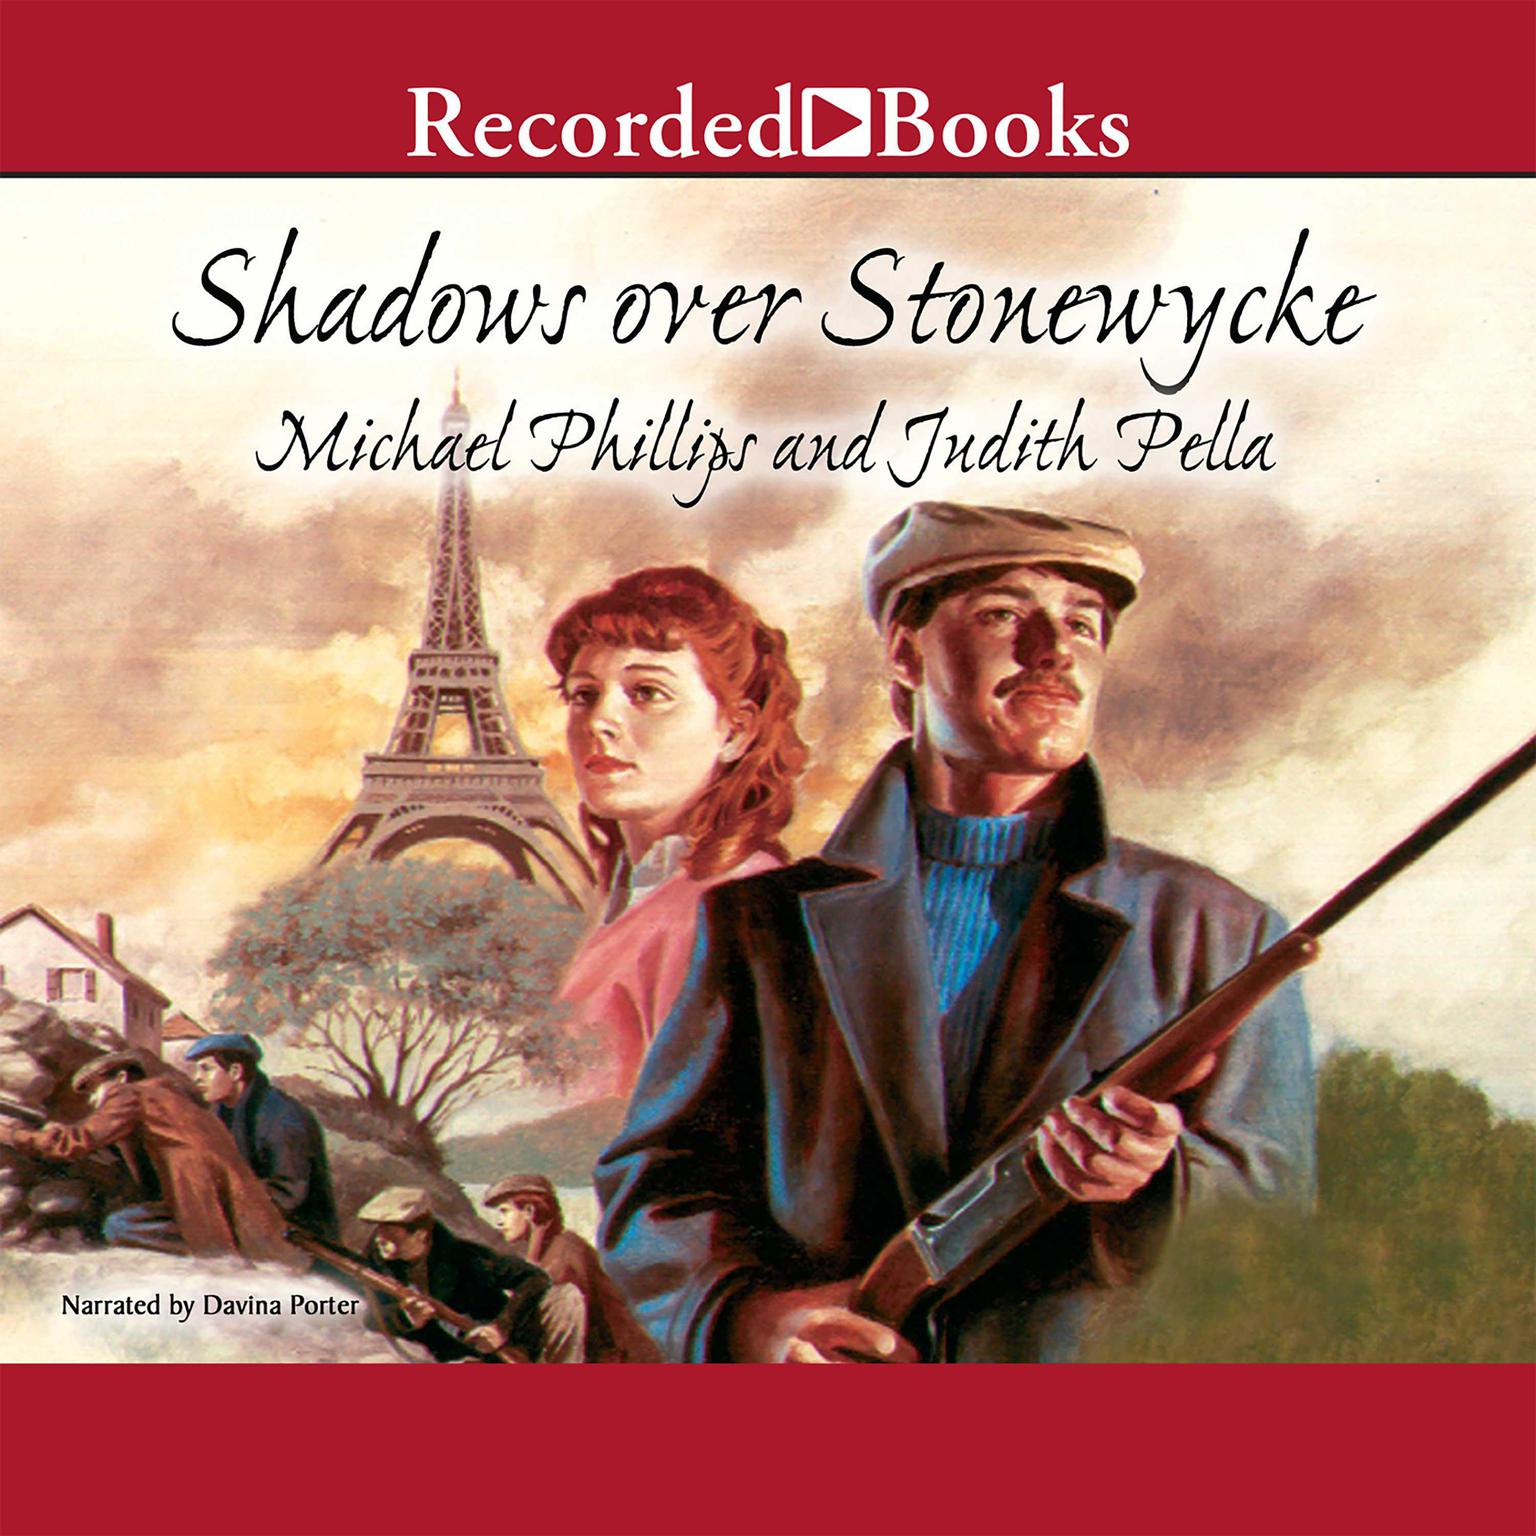 Printable Shadows over Stonewycke Audiobook Cover Art